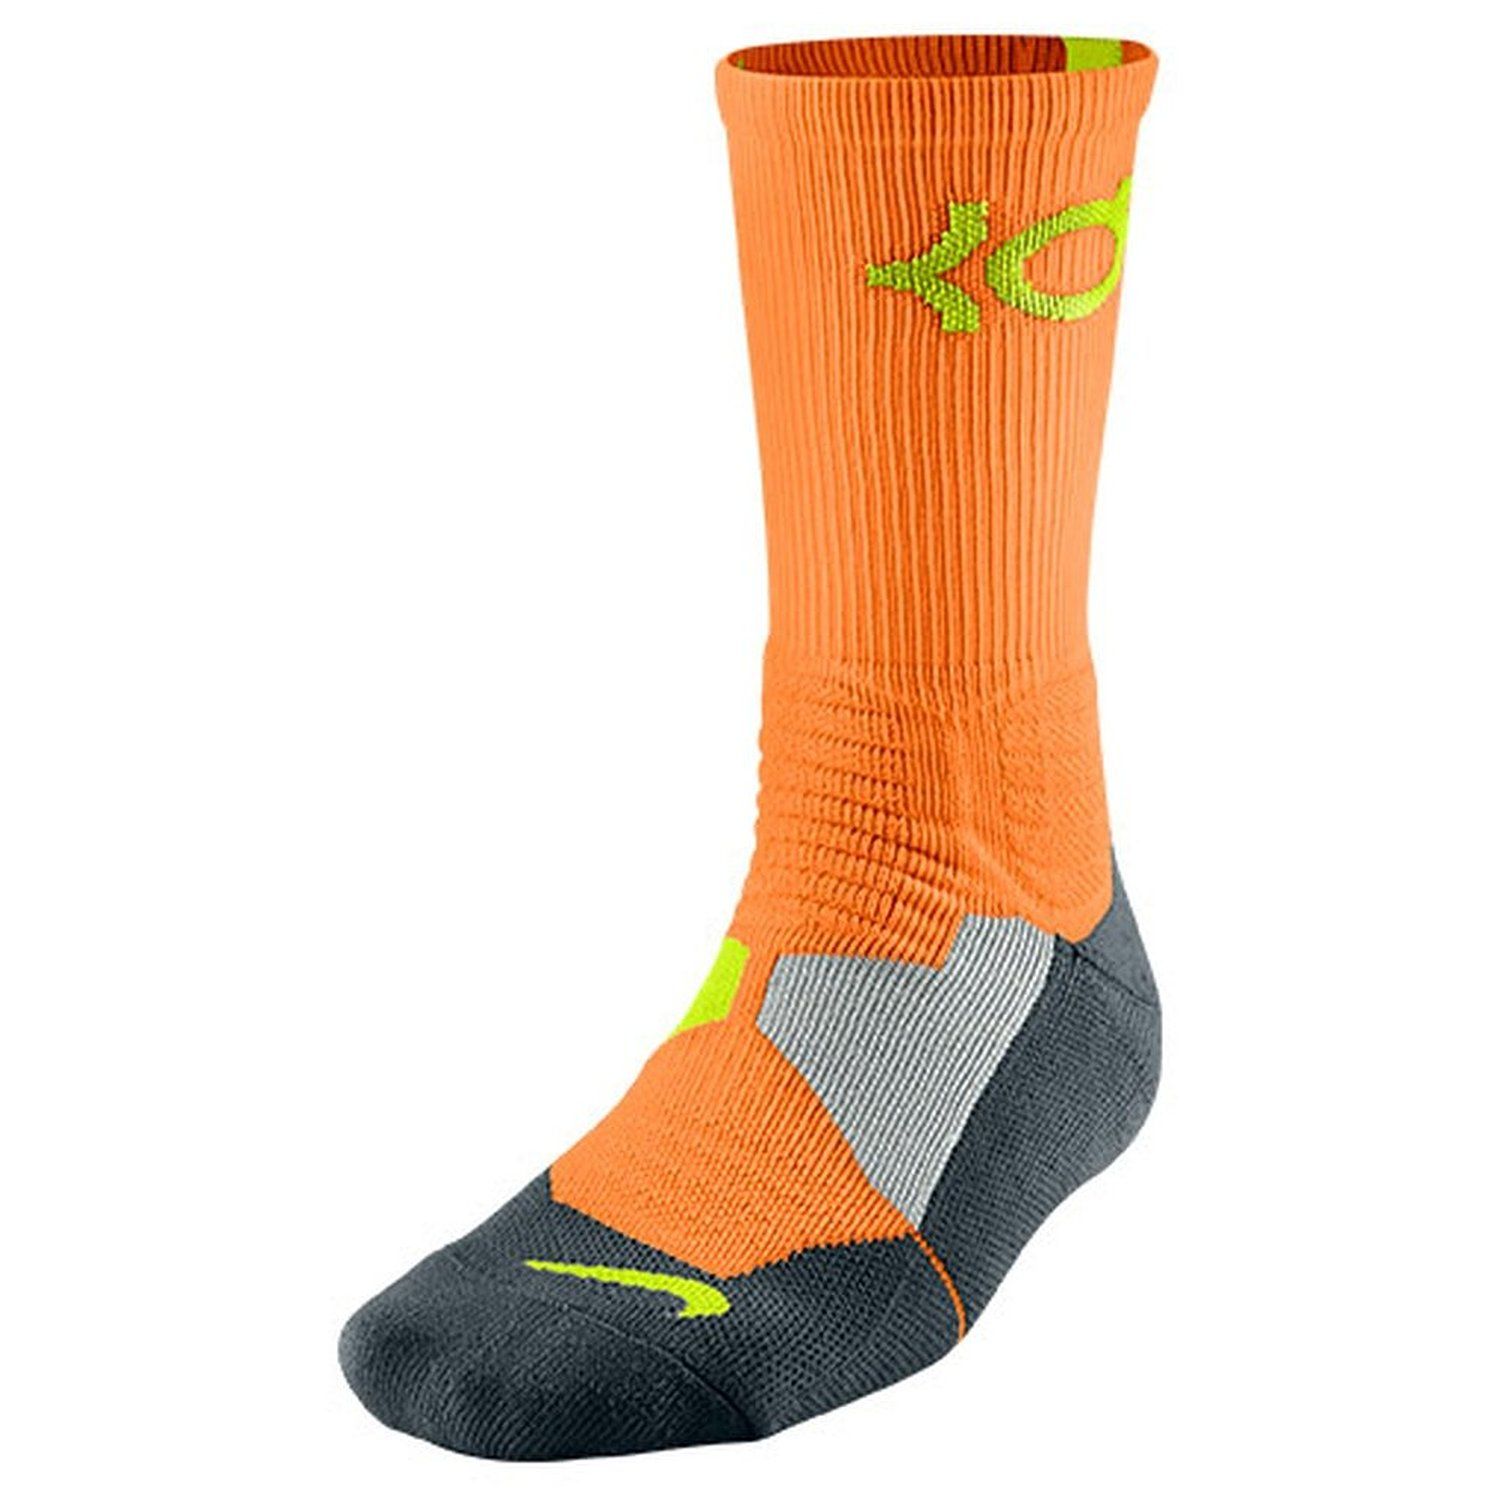 60a576a313b8 Buy Nike Mens KD Kevin Durant Hyper Elite Crew Socks Bright Citrus ...